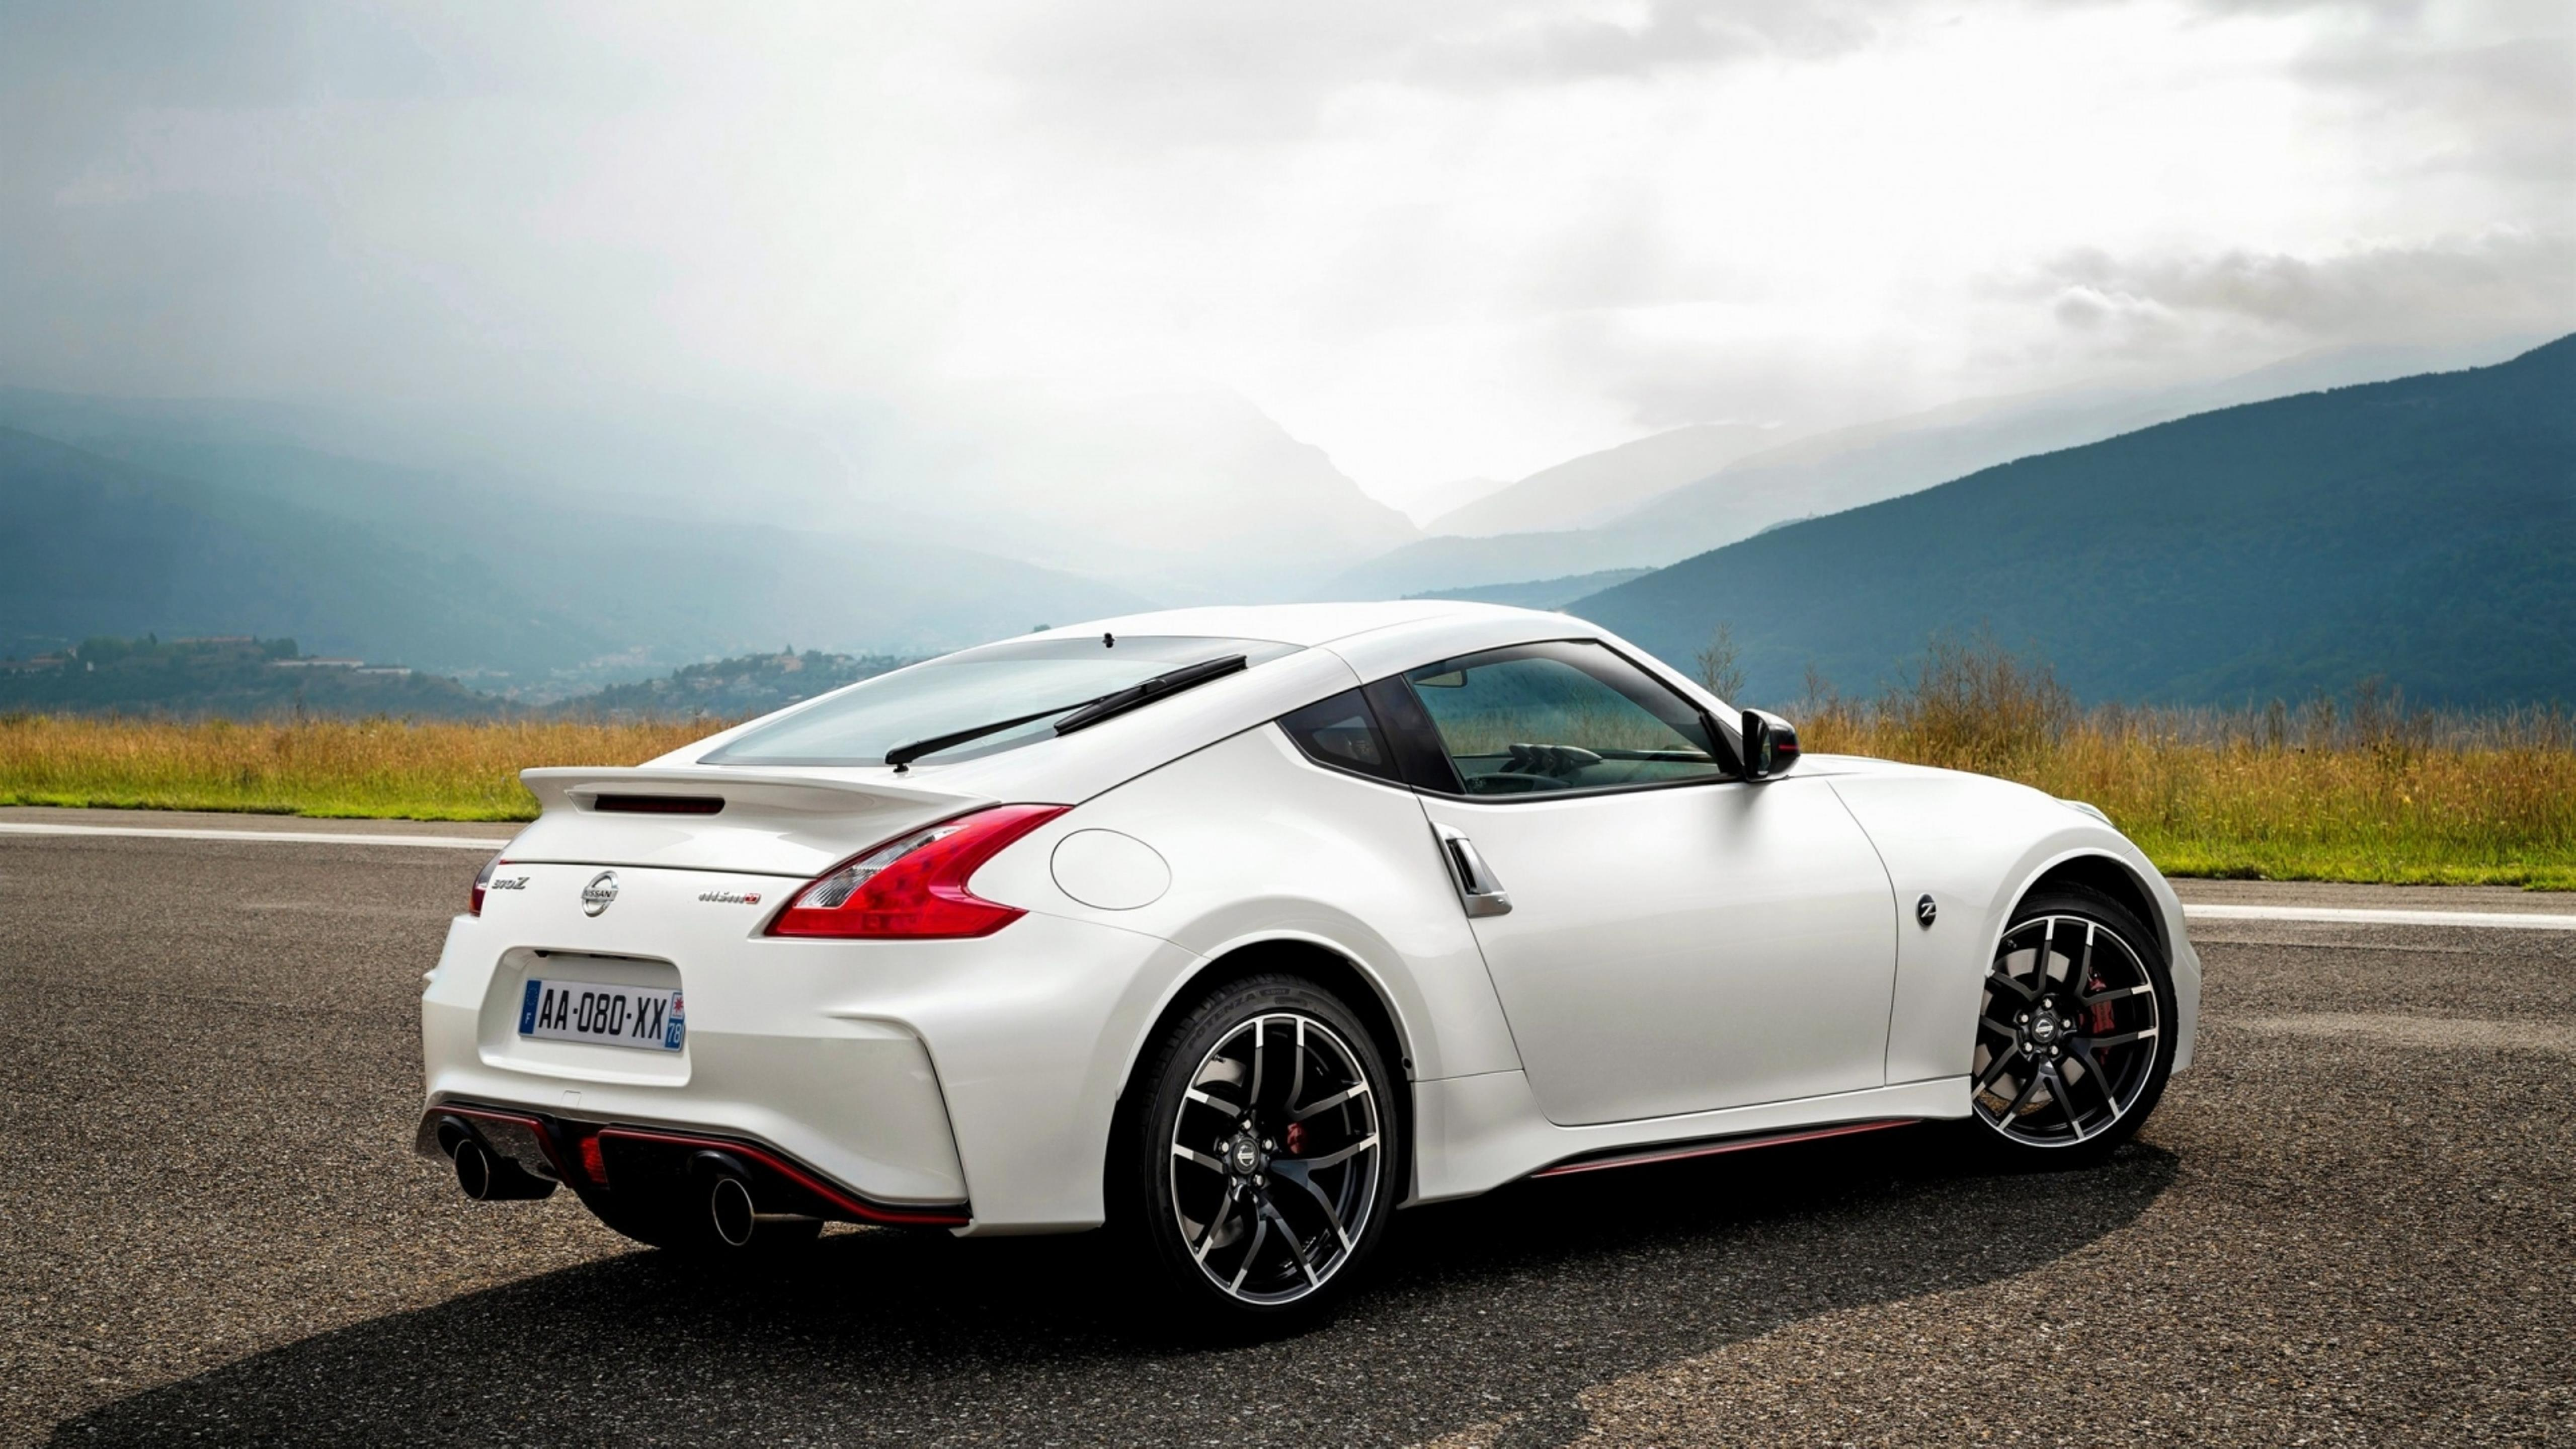 Related Images To Wallpaper Nissan Sport Cars For Sale